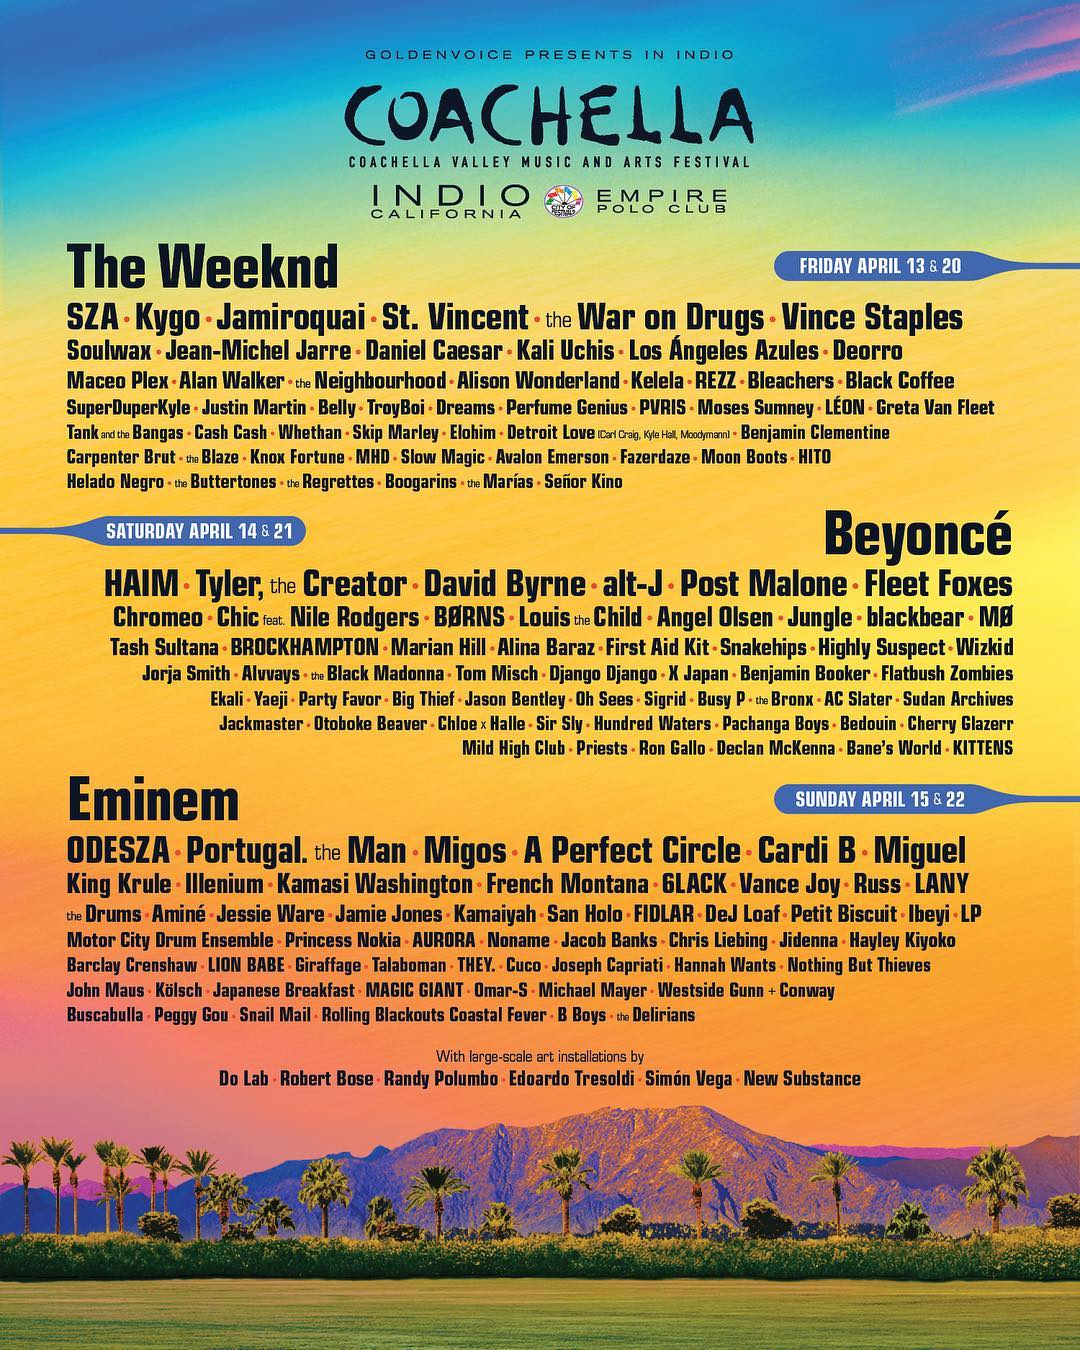 Every Year Coachella Proves Itslef As One Of The Biggest Music Festivals Out There And Thats Why Every Year After The Weekends End Theres Speculation